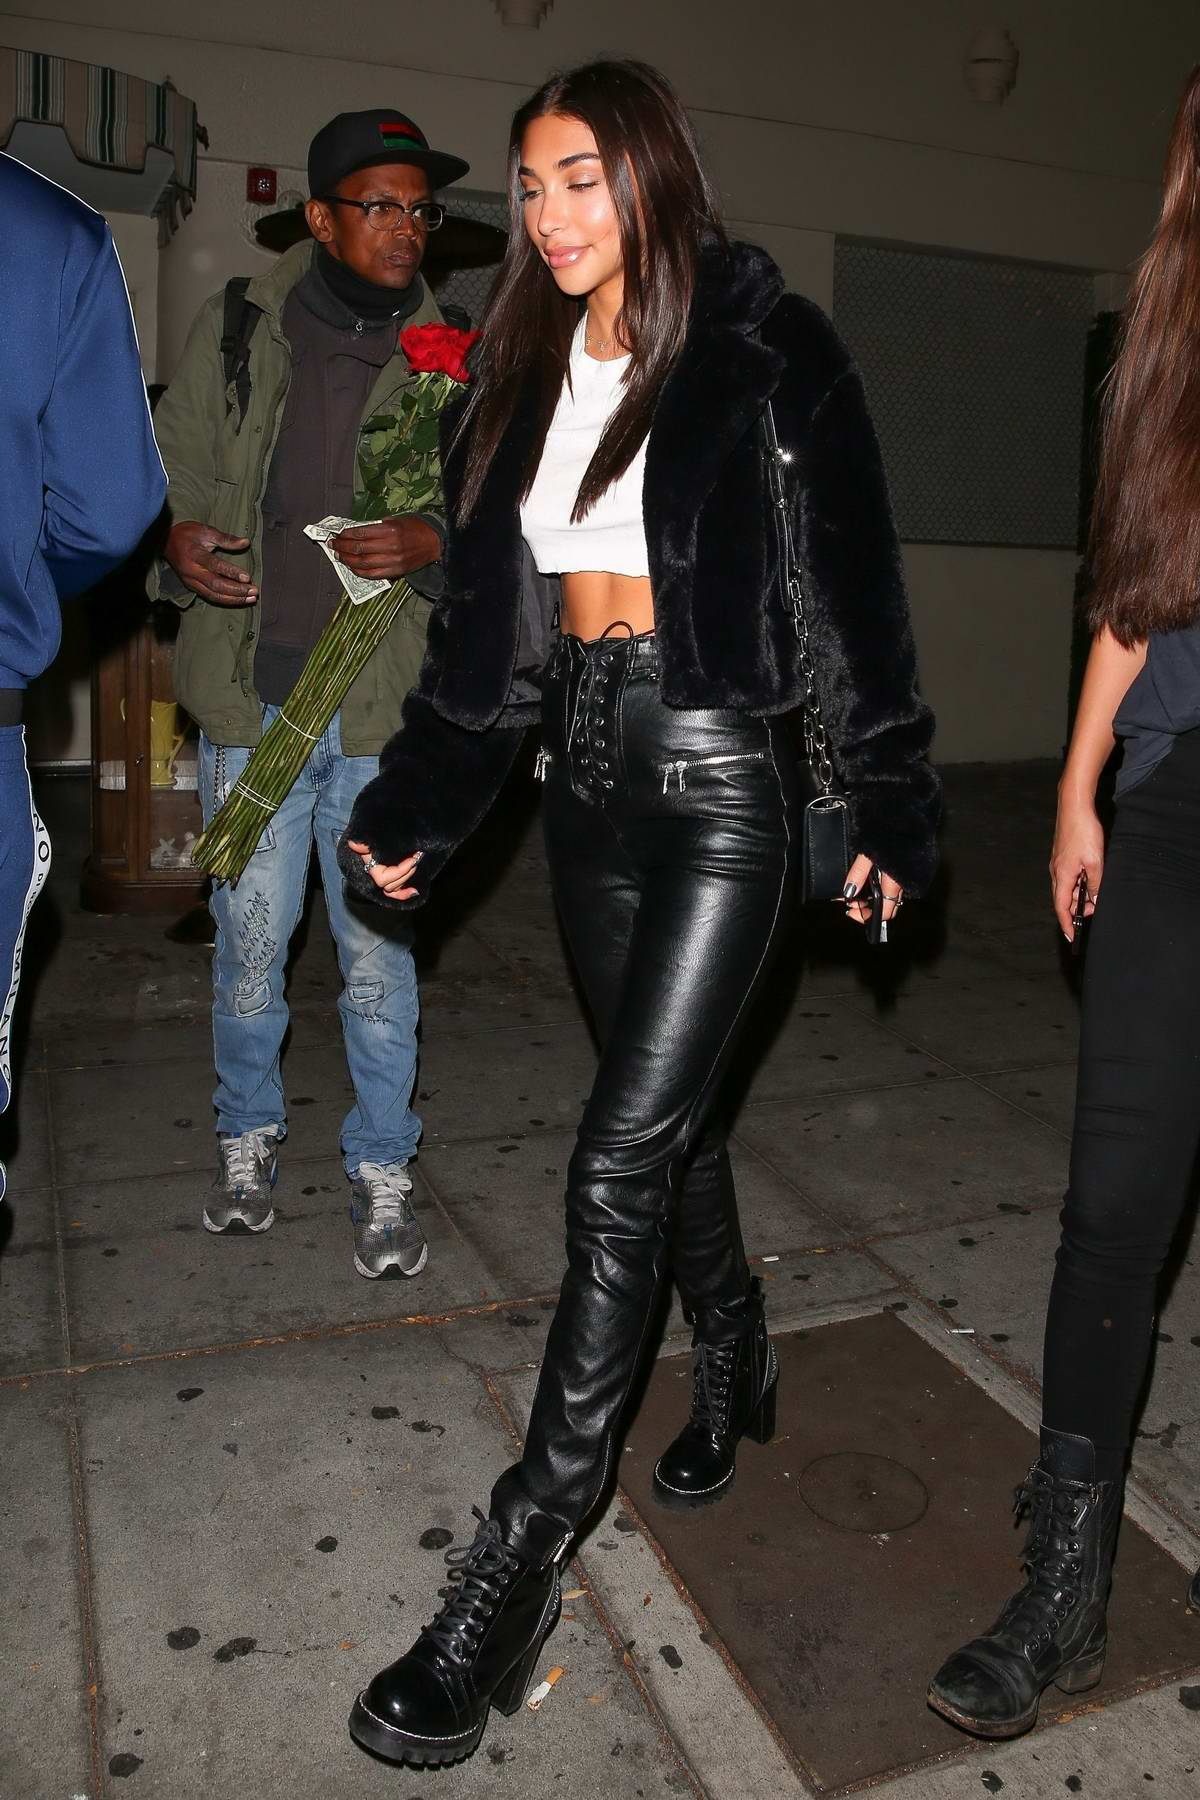 Chantel Jeffries wears a black furry jacket over a white cropped top and black leather pants during a night out at Delilah's in West Hollywood, Los Angeles